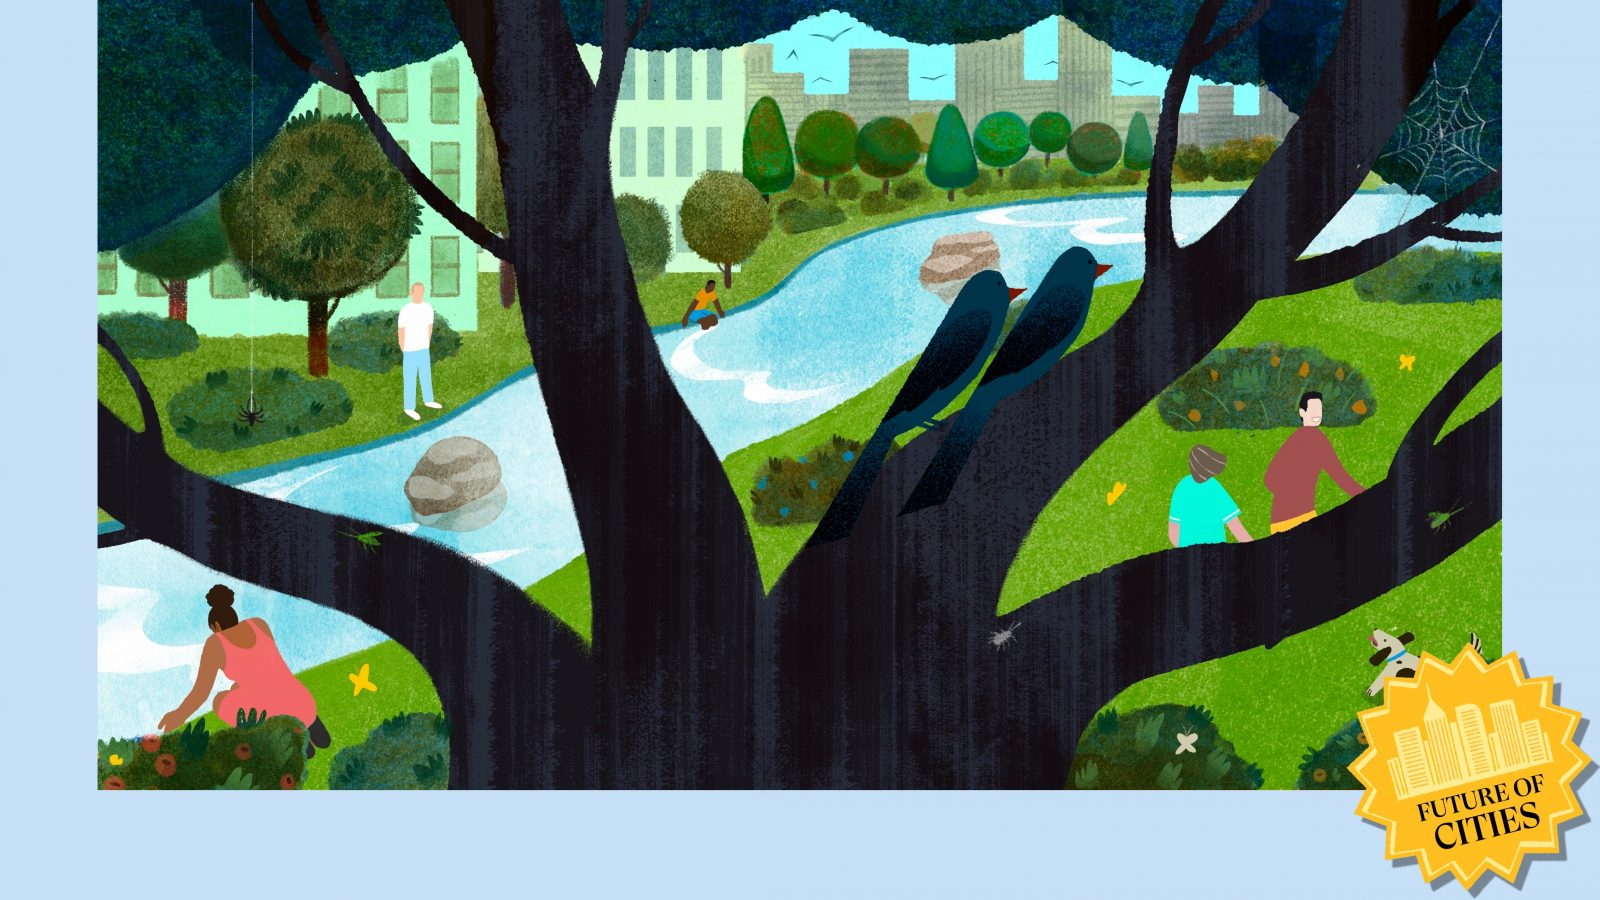 Illustration of a lush, green city park by a river, with a tree in the foreground